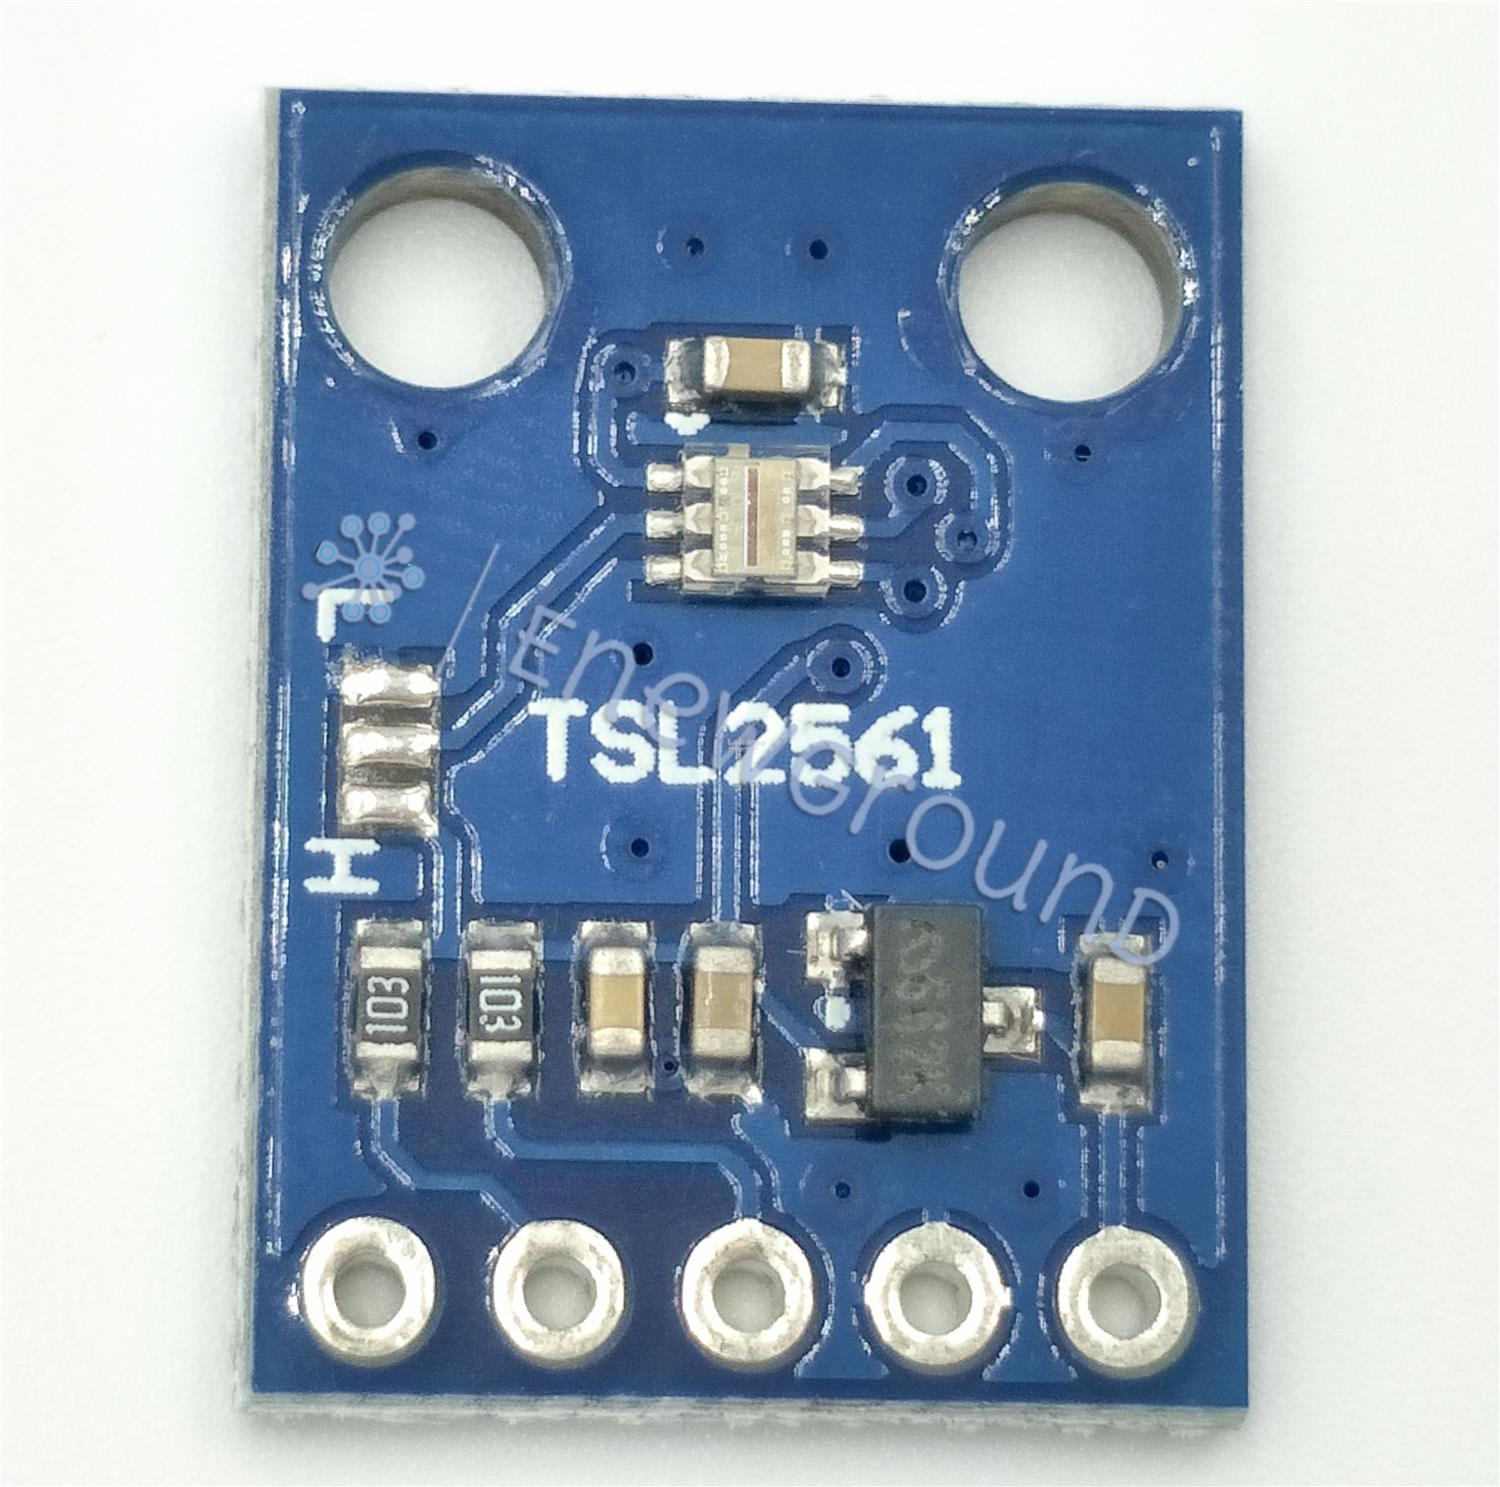 Light sensor module (GY-2561 TSL2561, 300 to 1100 nm)